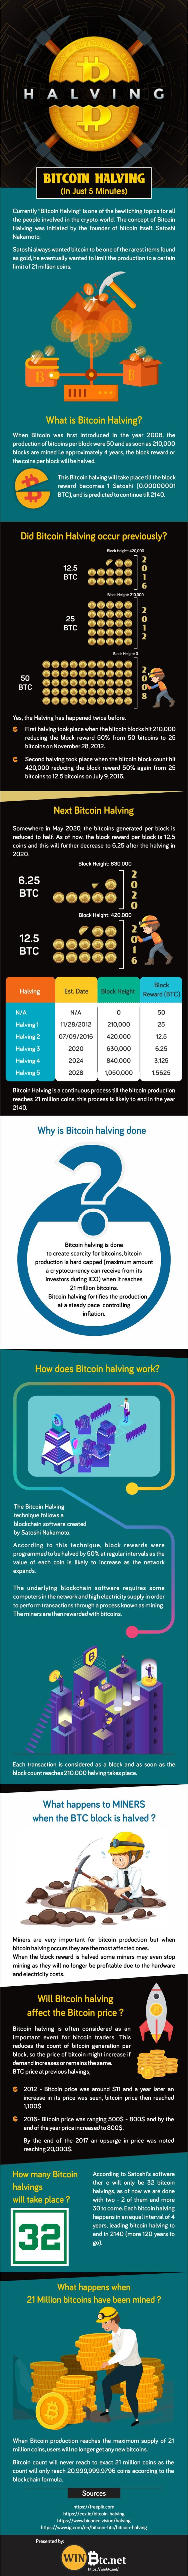 Bitcoin Halving in Just 5 Minutes #infographic